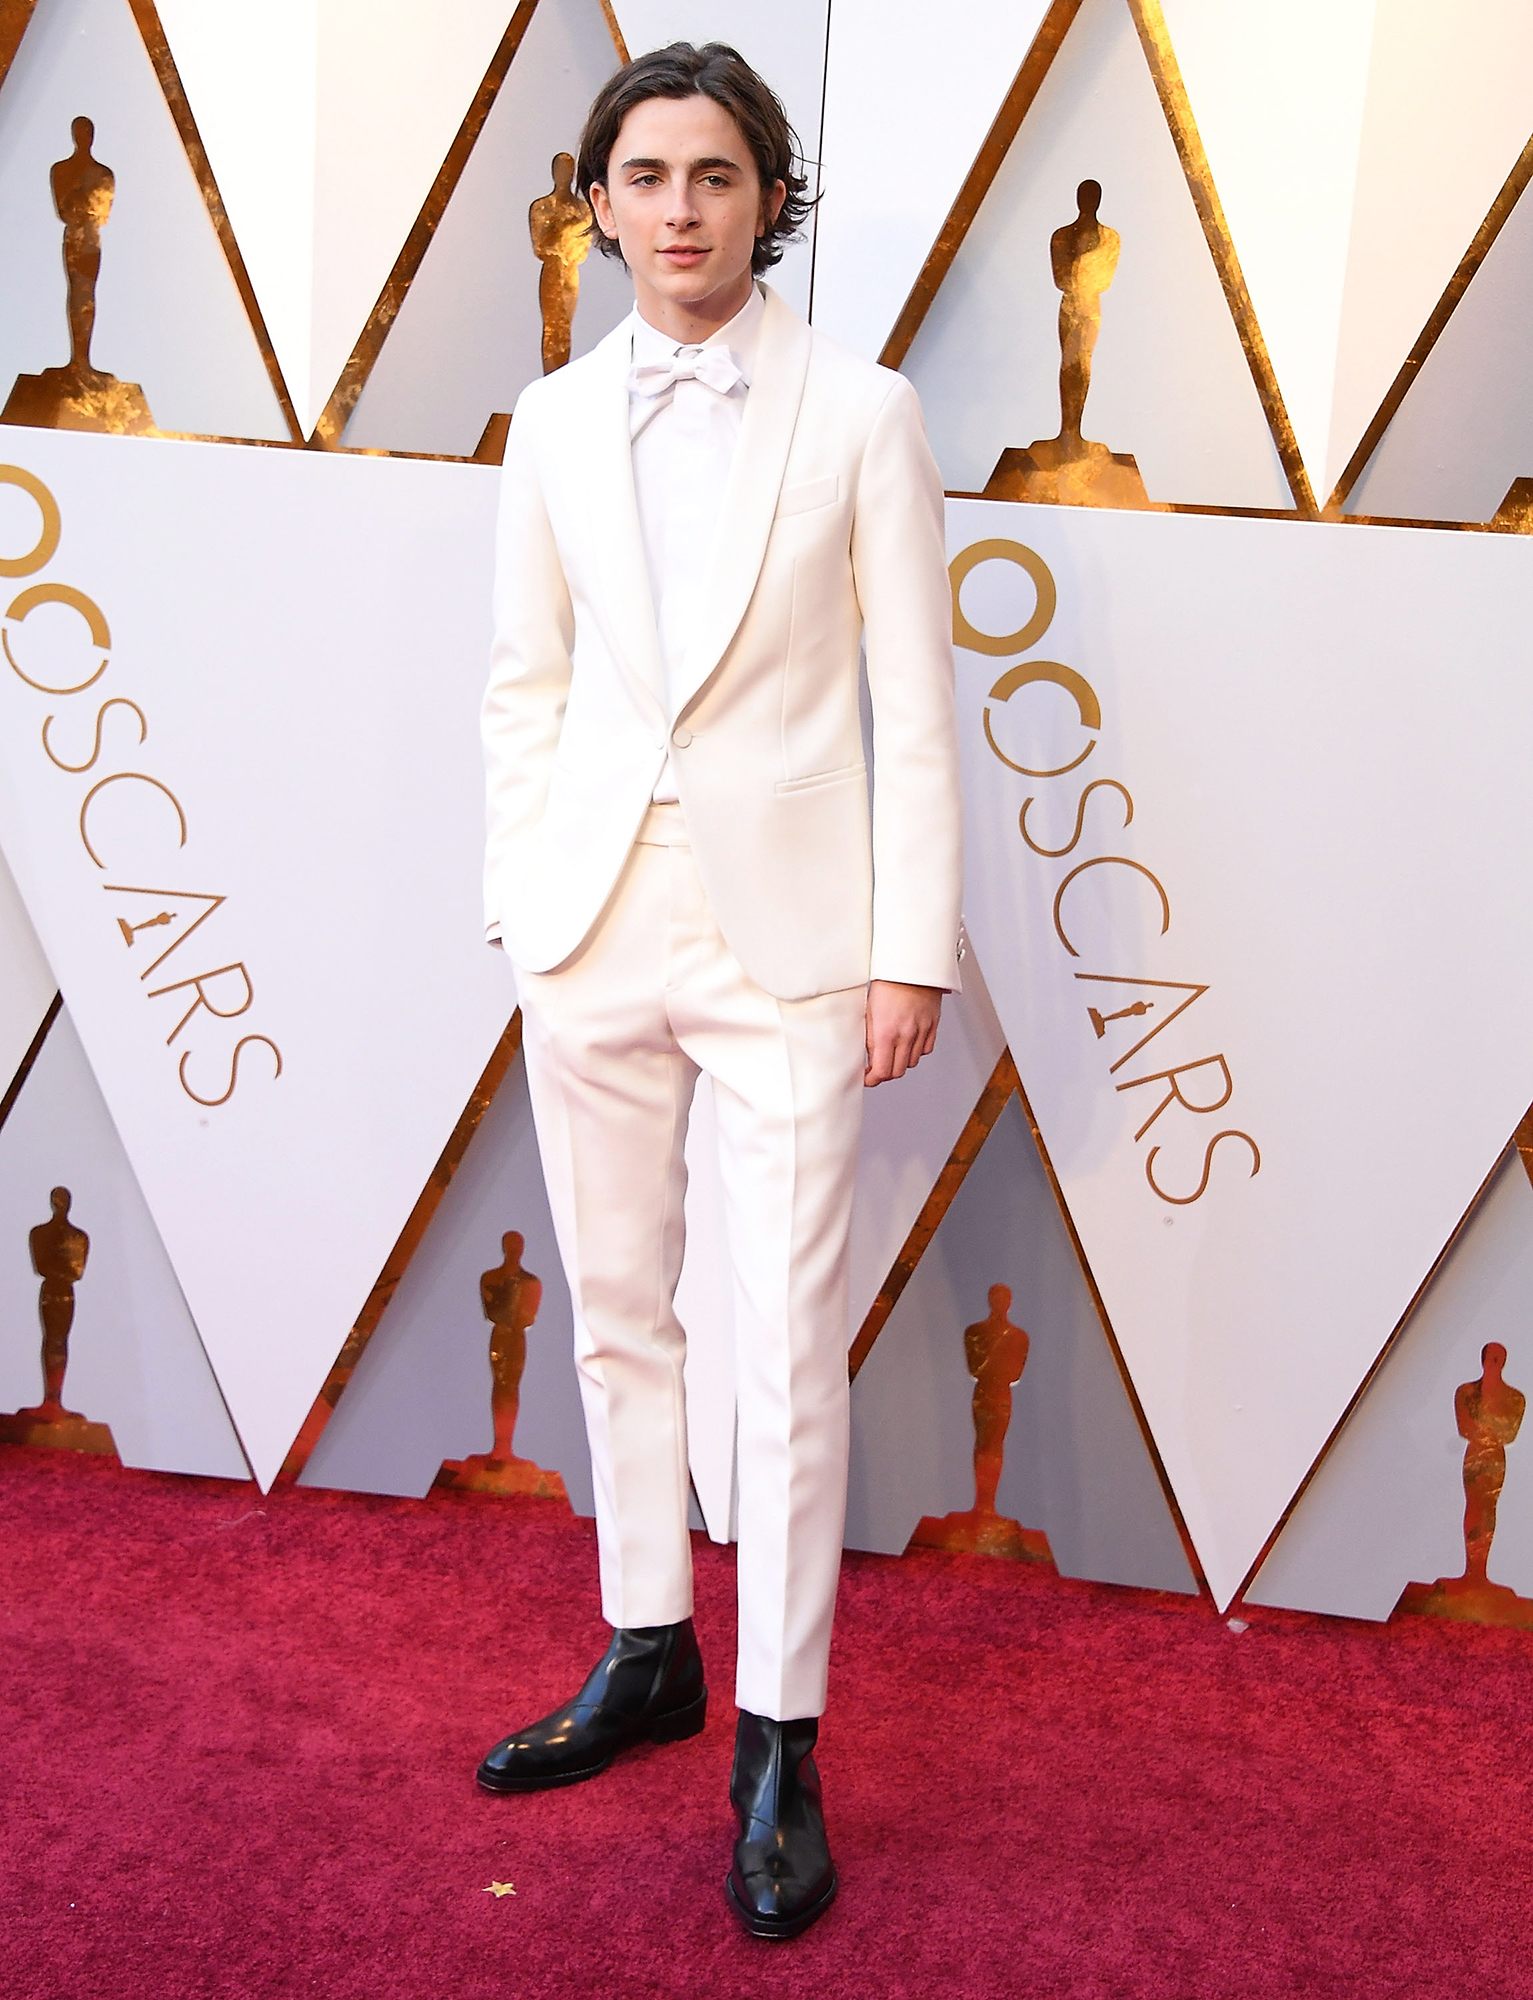 Hottest Guys in Suits - 2018 Edition - All white everything was the name of the game for the Call Me By Your Name star in a Berluti suit at the Oscars.